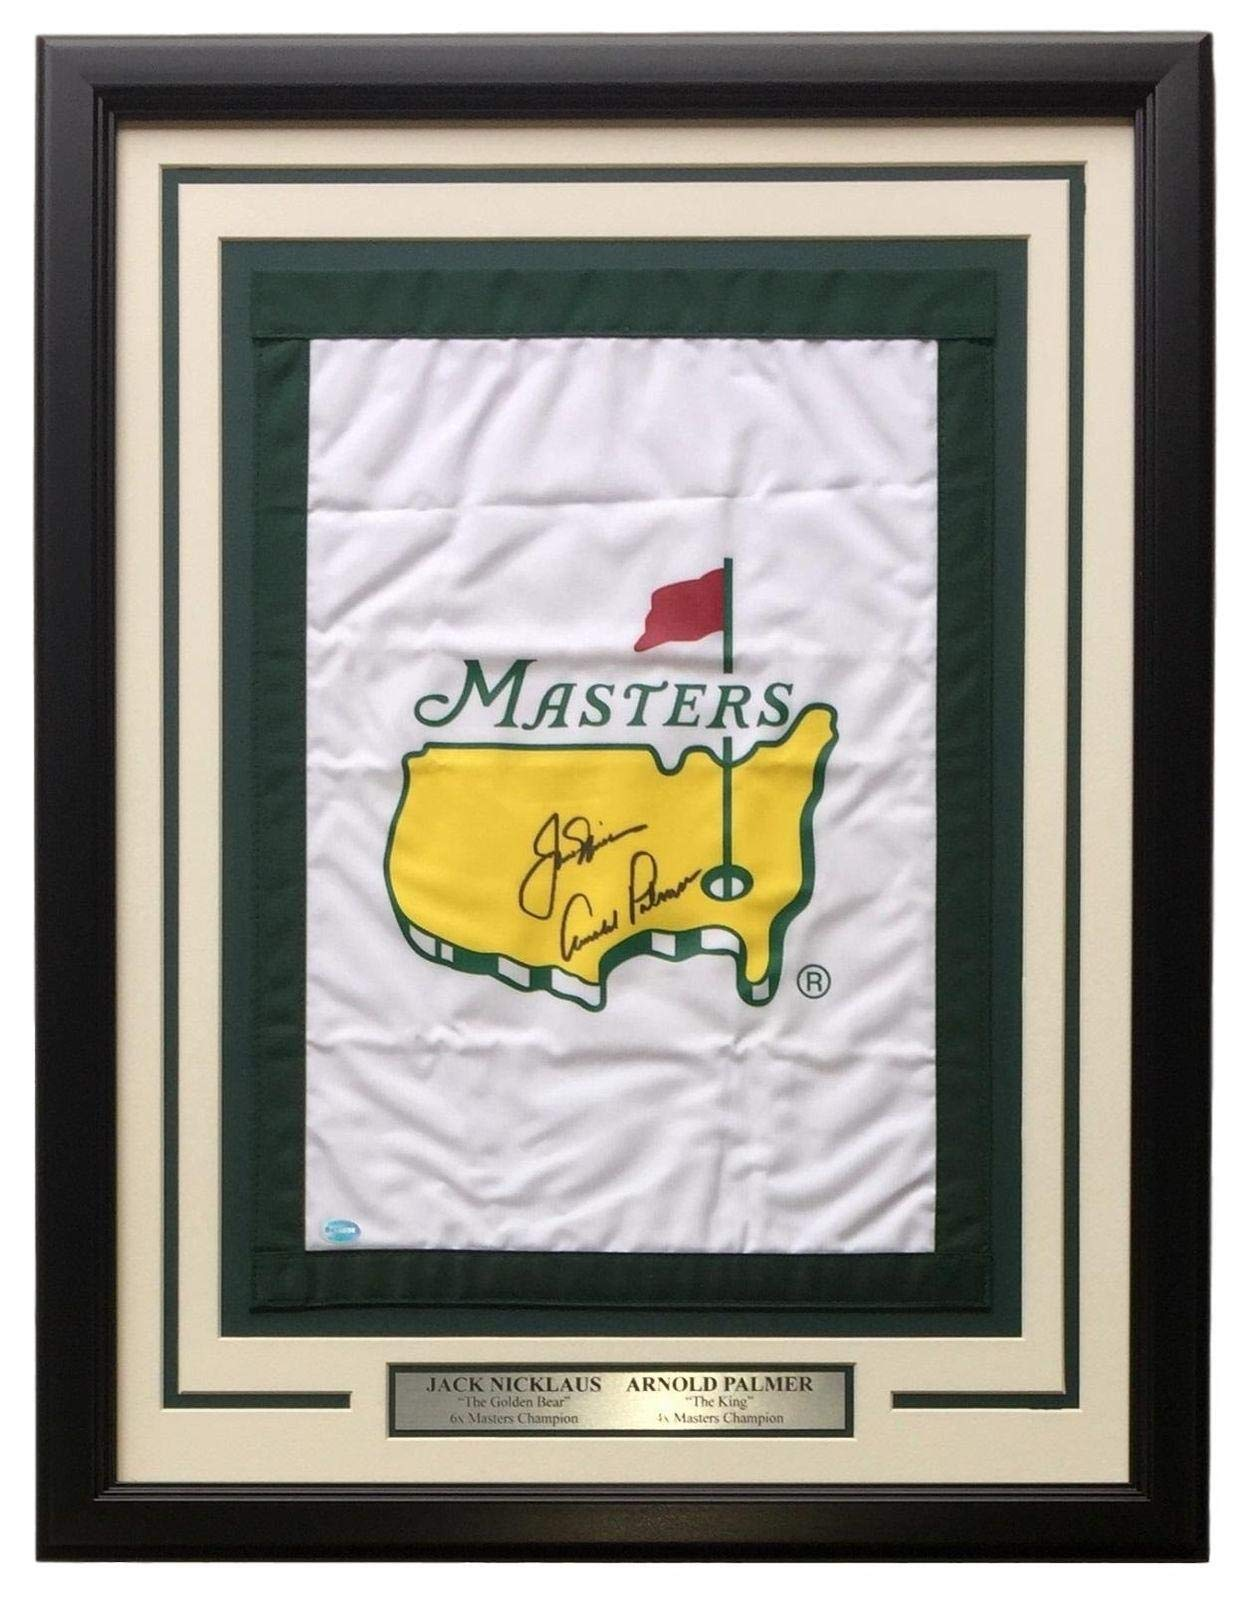 Jack Nicklaus Arnold Palmer Dual Signed Framed Masters Golf Flag LOA JSA Certified Autographed Pin Flags